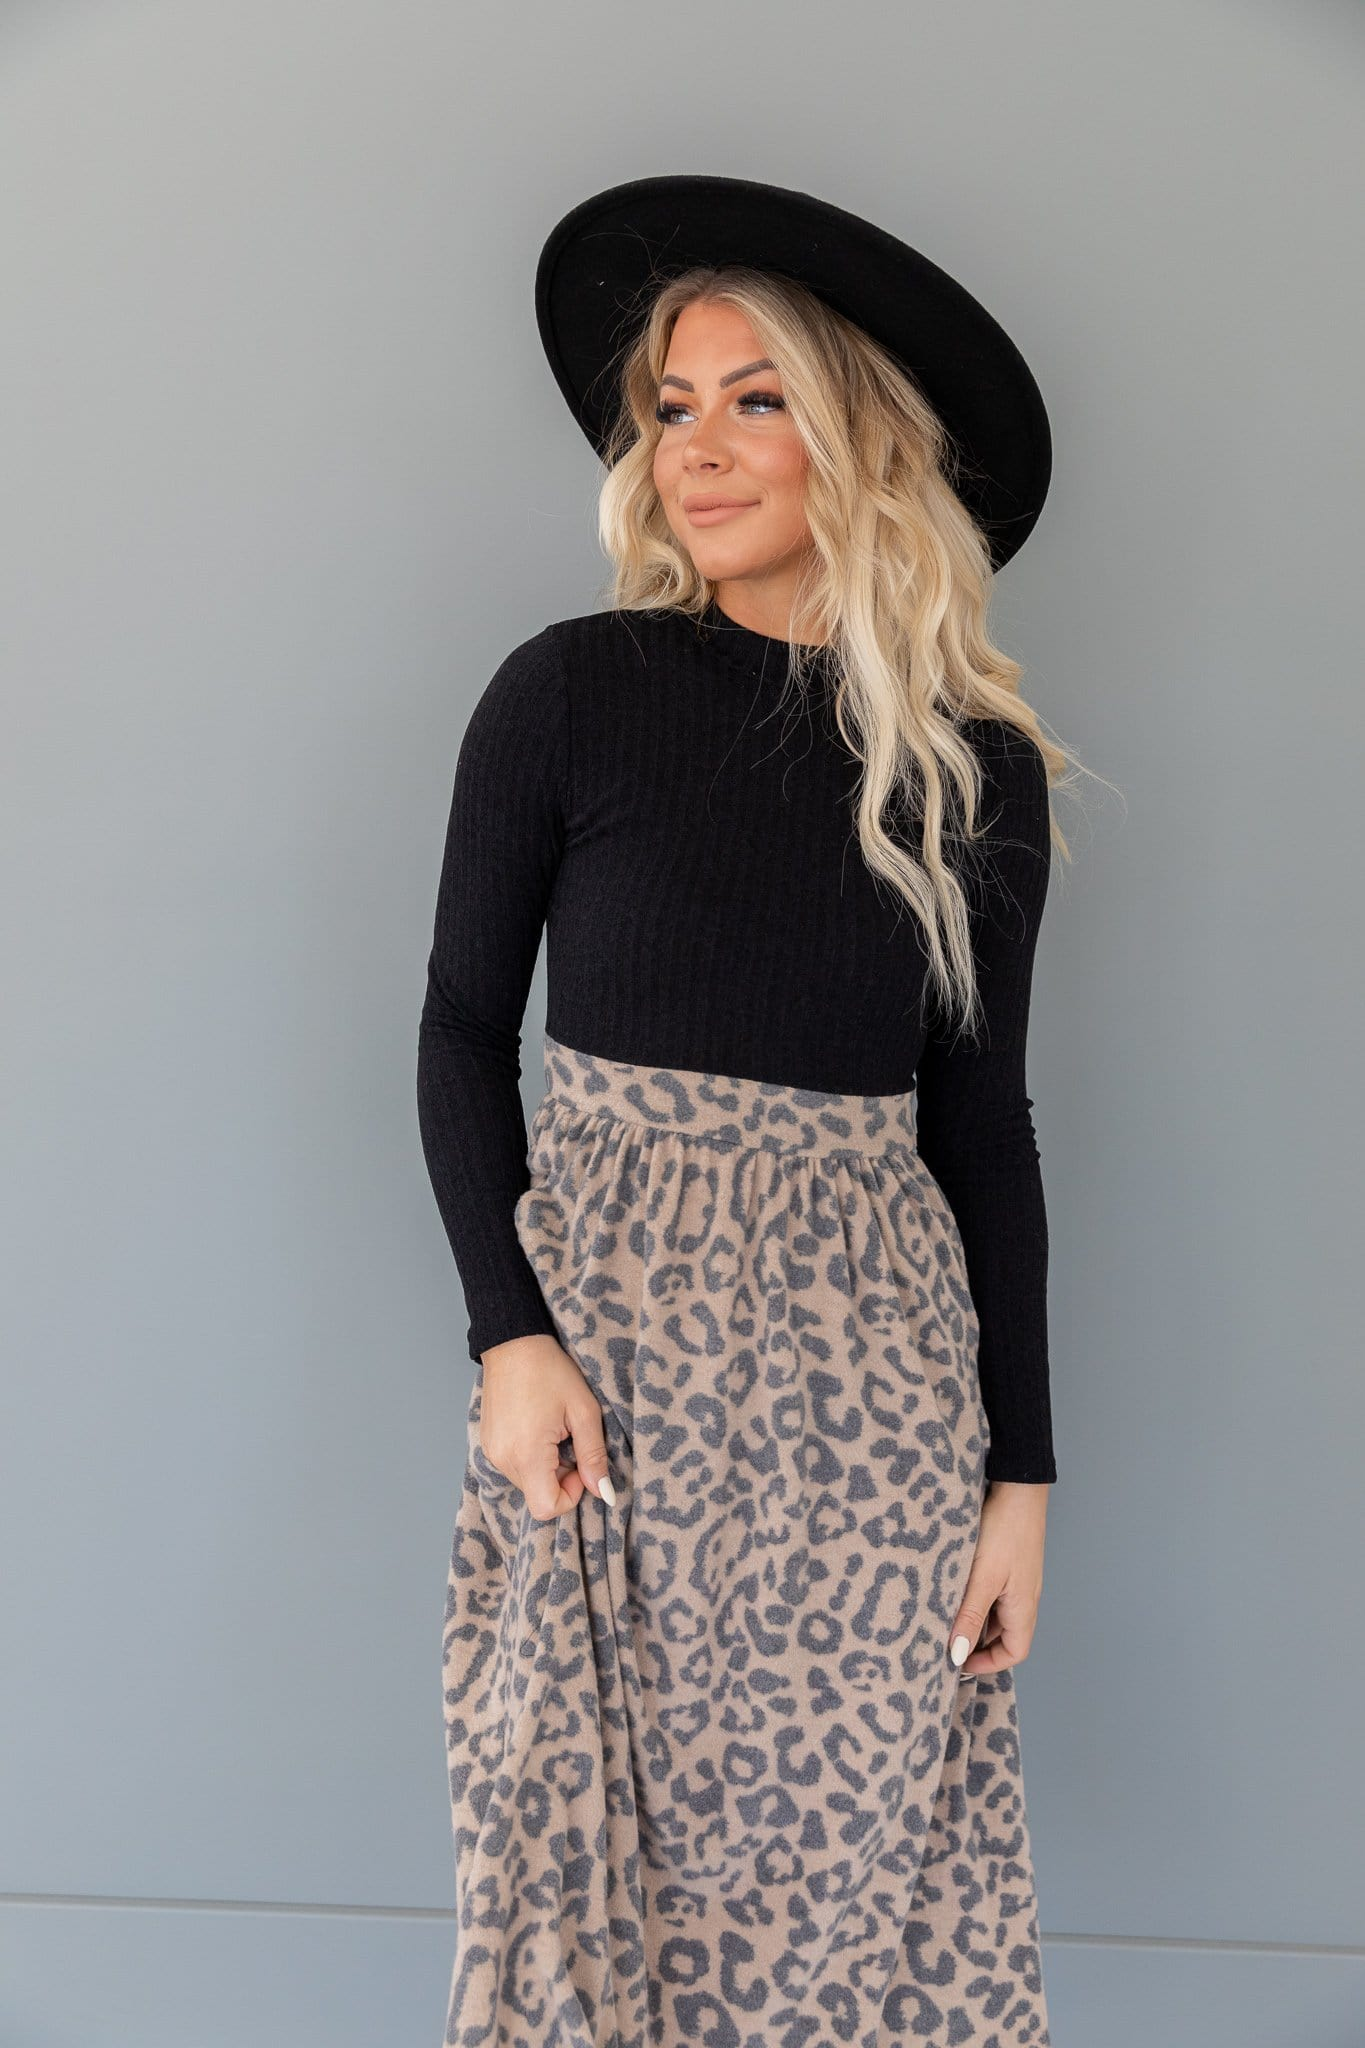 The Kendry Animal Print Dress in Black